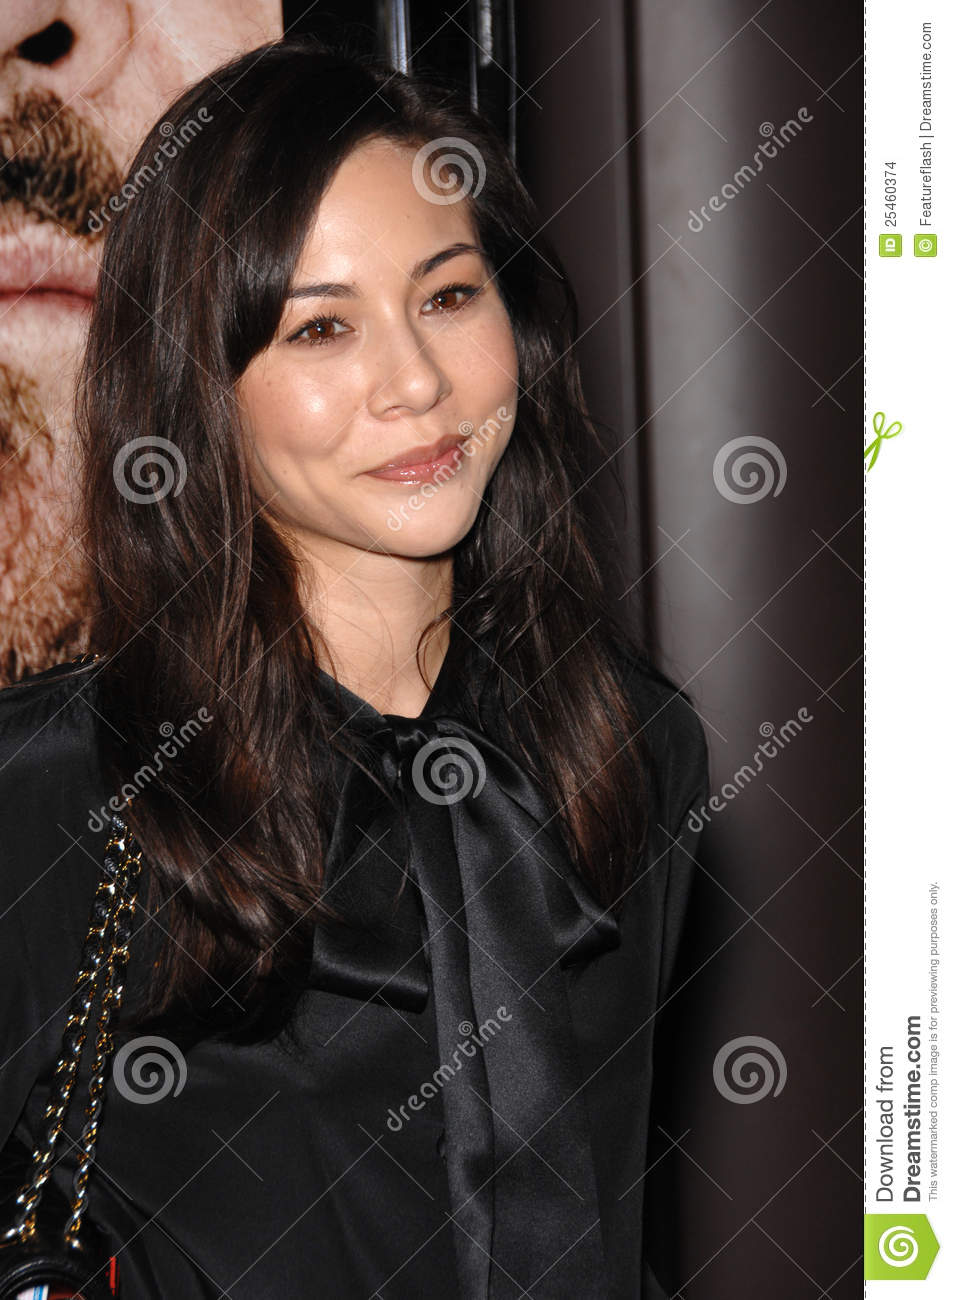 china chowchina chow mark wahlberg, china chow foto, china chow, china chow husband, china chow instagram, china chow the big hit, china chow crossfit, china chow boyfriend, china chow marilyn manson, china chow hot, china chow married, china chow photos, china chow imdb, china chow steve coogan, china chow net worth, china chow and keanu reeves